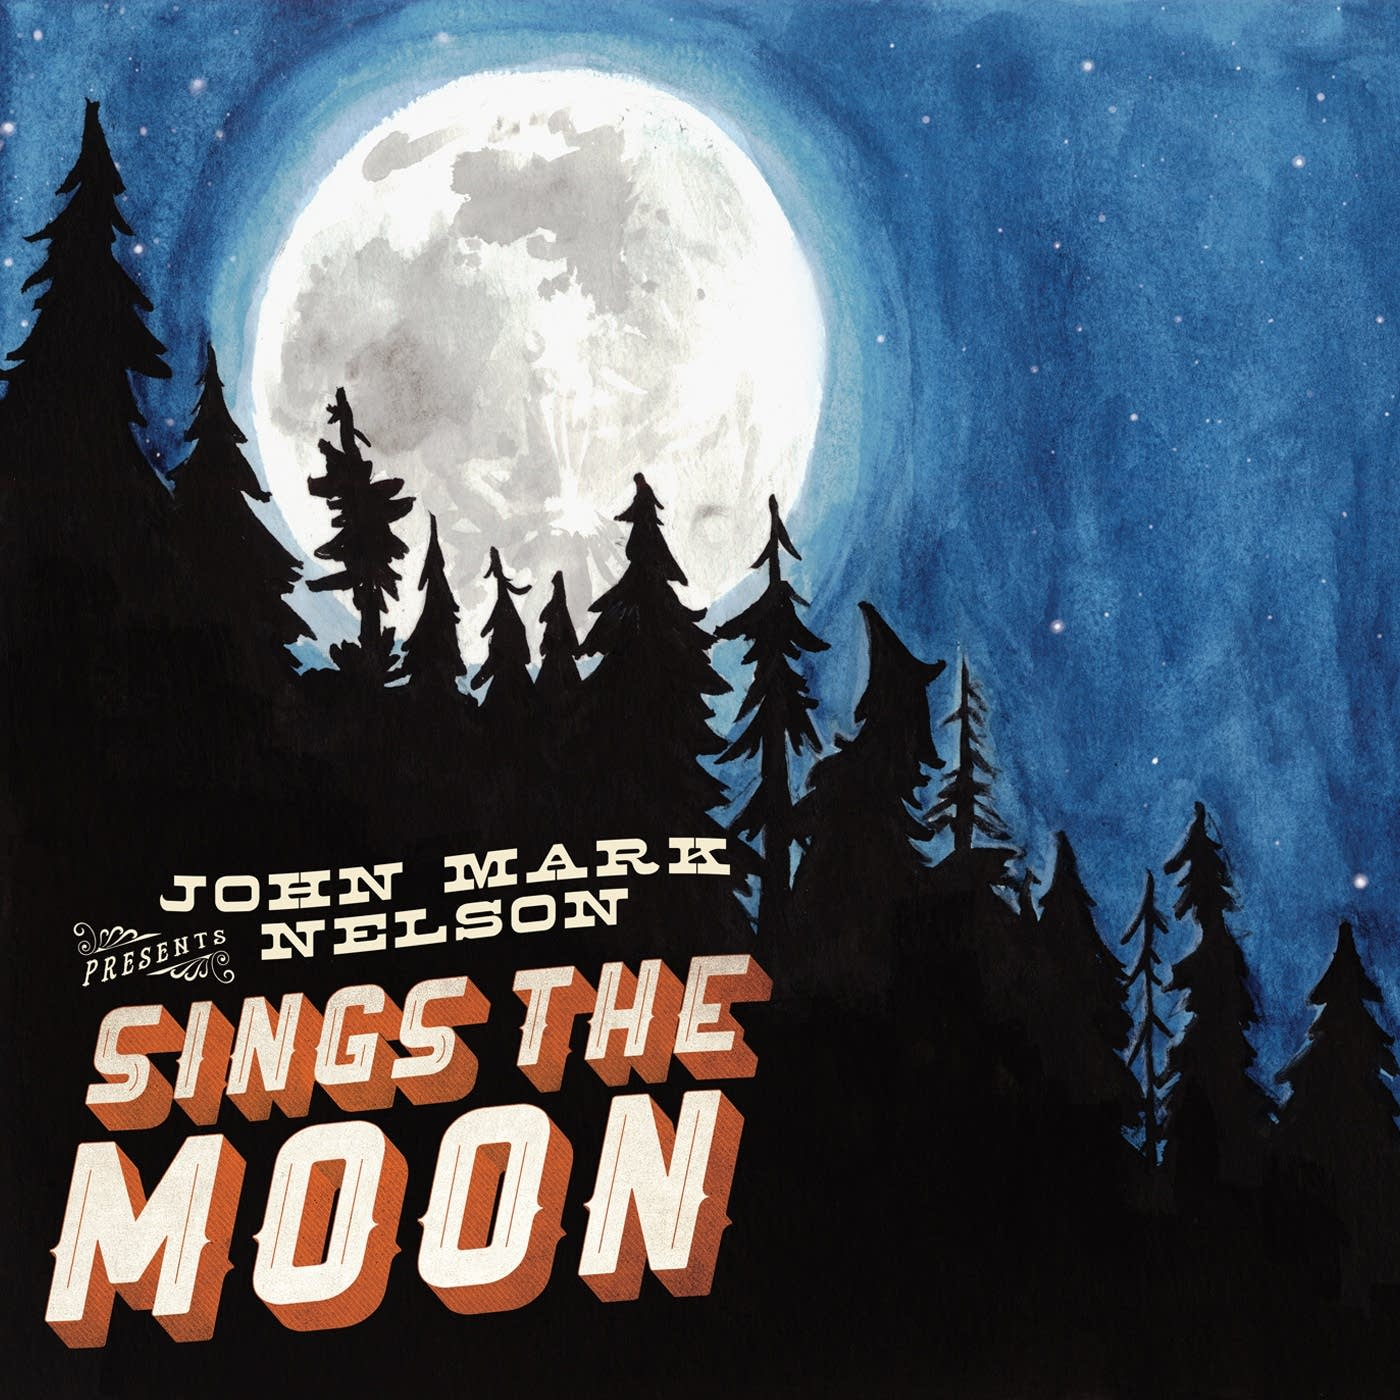 John Mark Nelson Sings the Moon